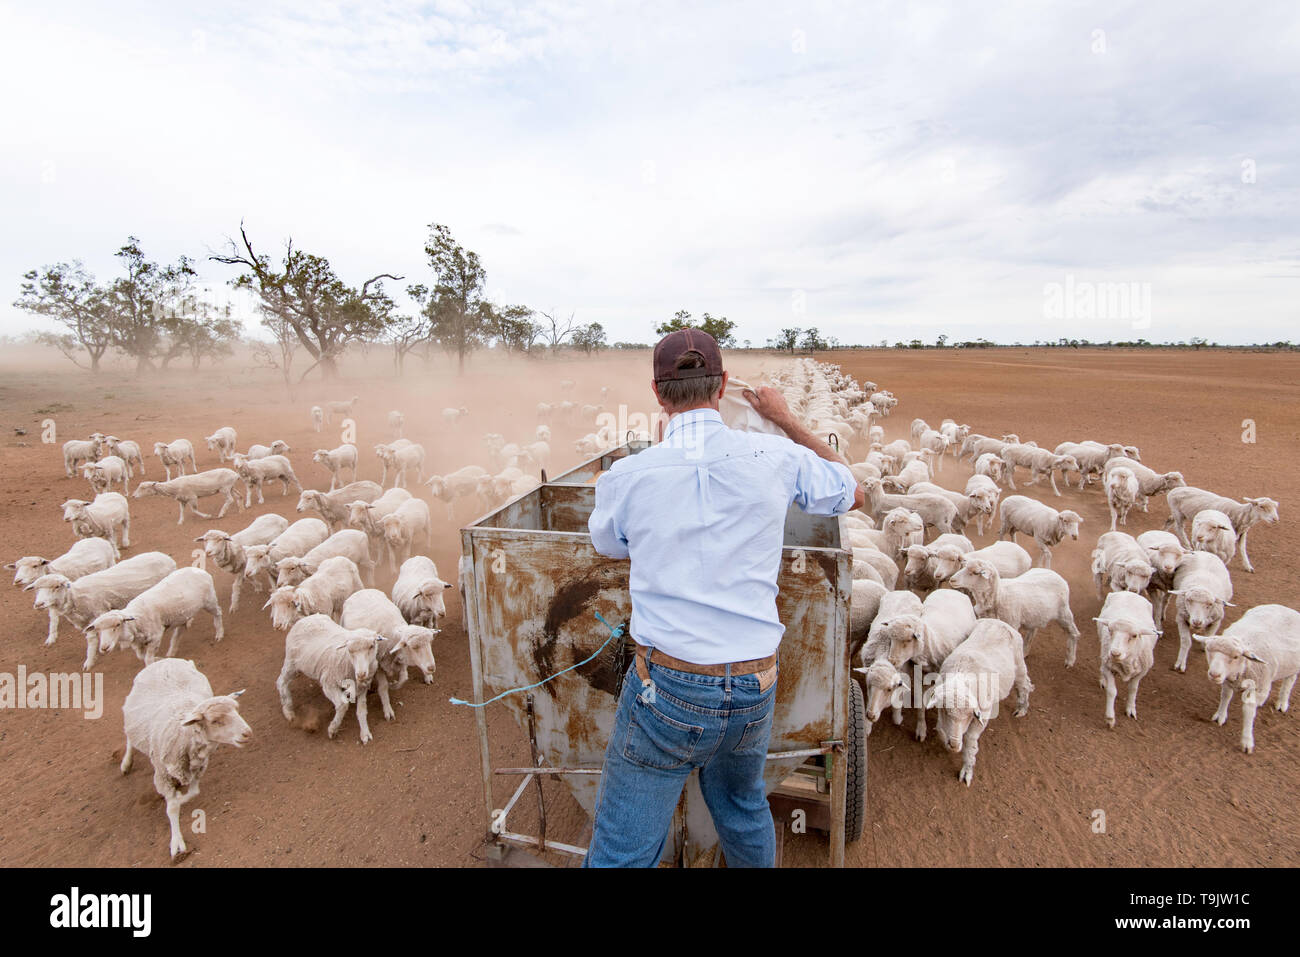 May 2019 Burren Junction, Australia: Farmer Richard Marshall delivers grain to his sheep in a dry and drought ravaged paddock. Stock Photo